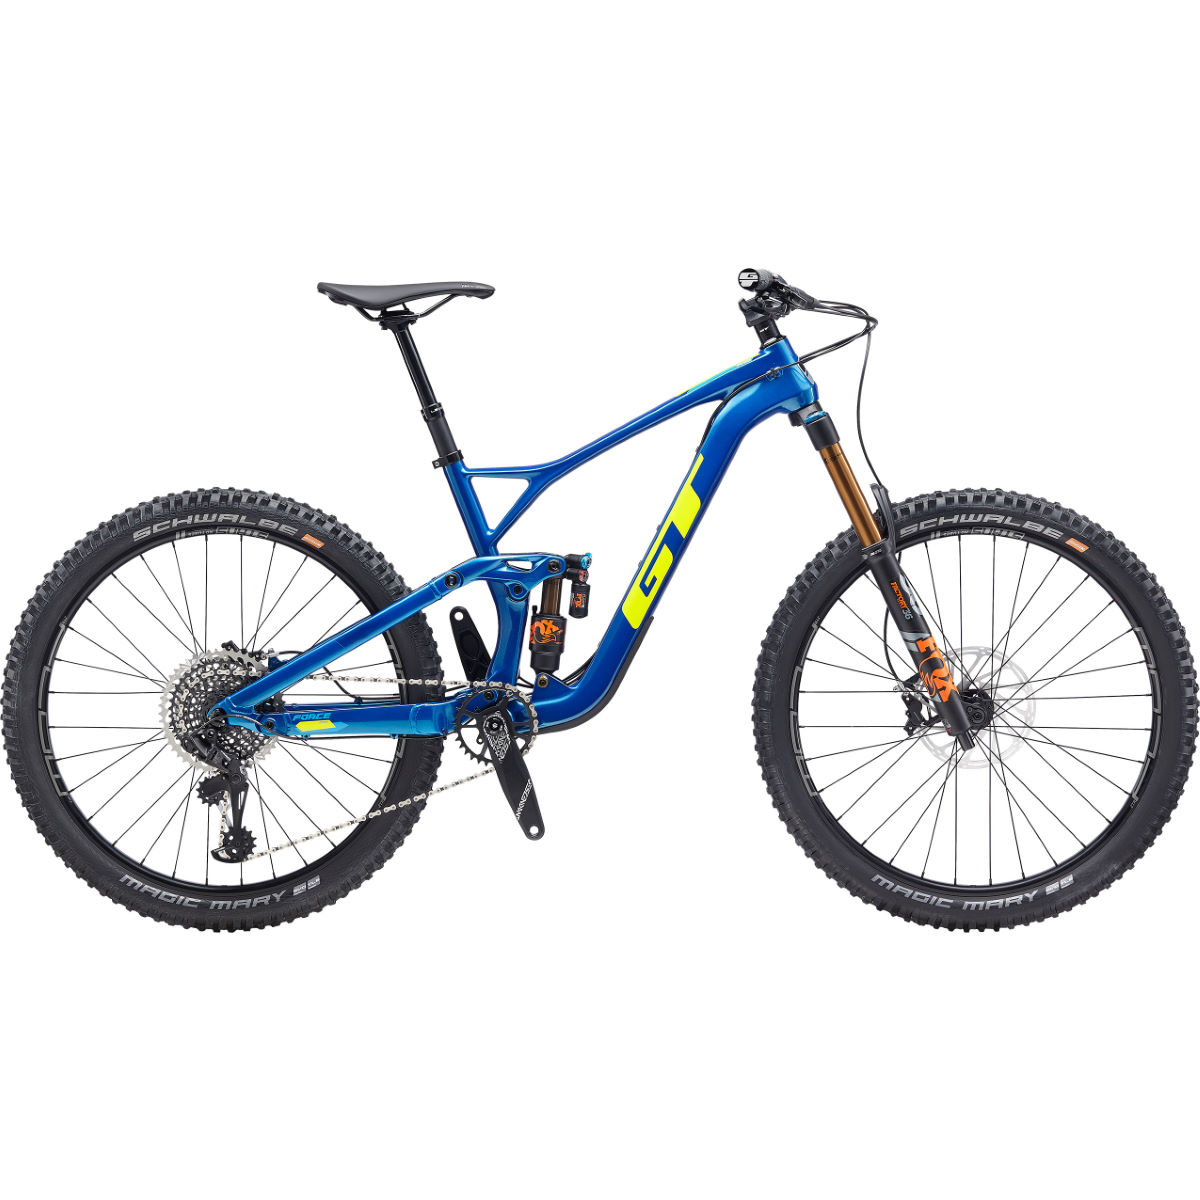 GT GT Force Carbon Pro 27.5 Bike (2020)   Full Suspension Mountain Bikes